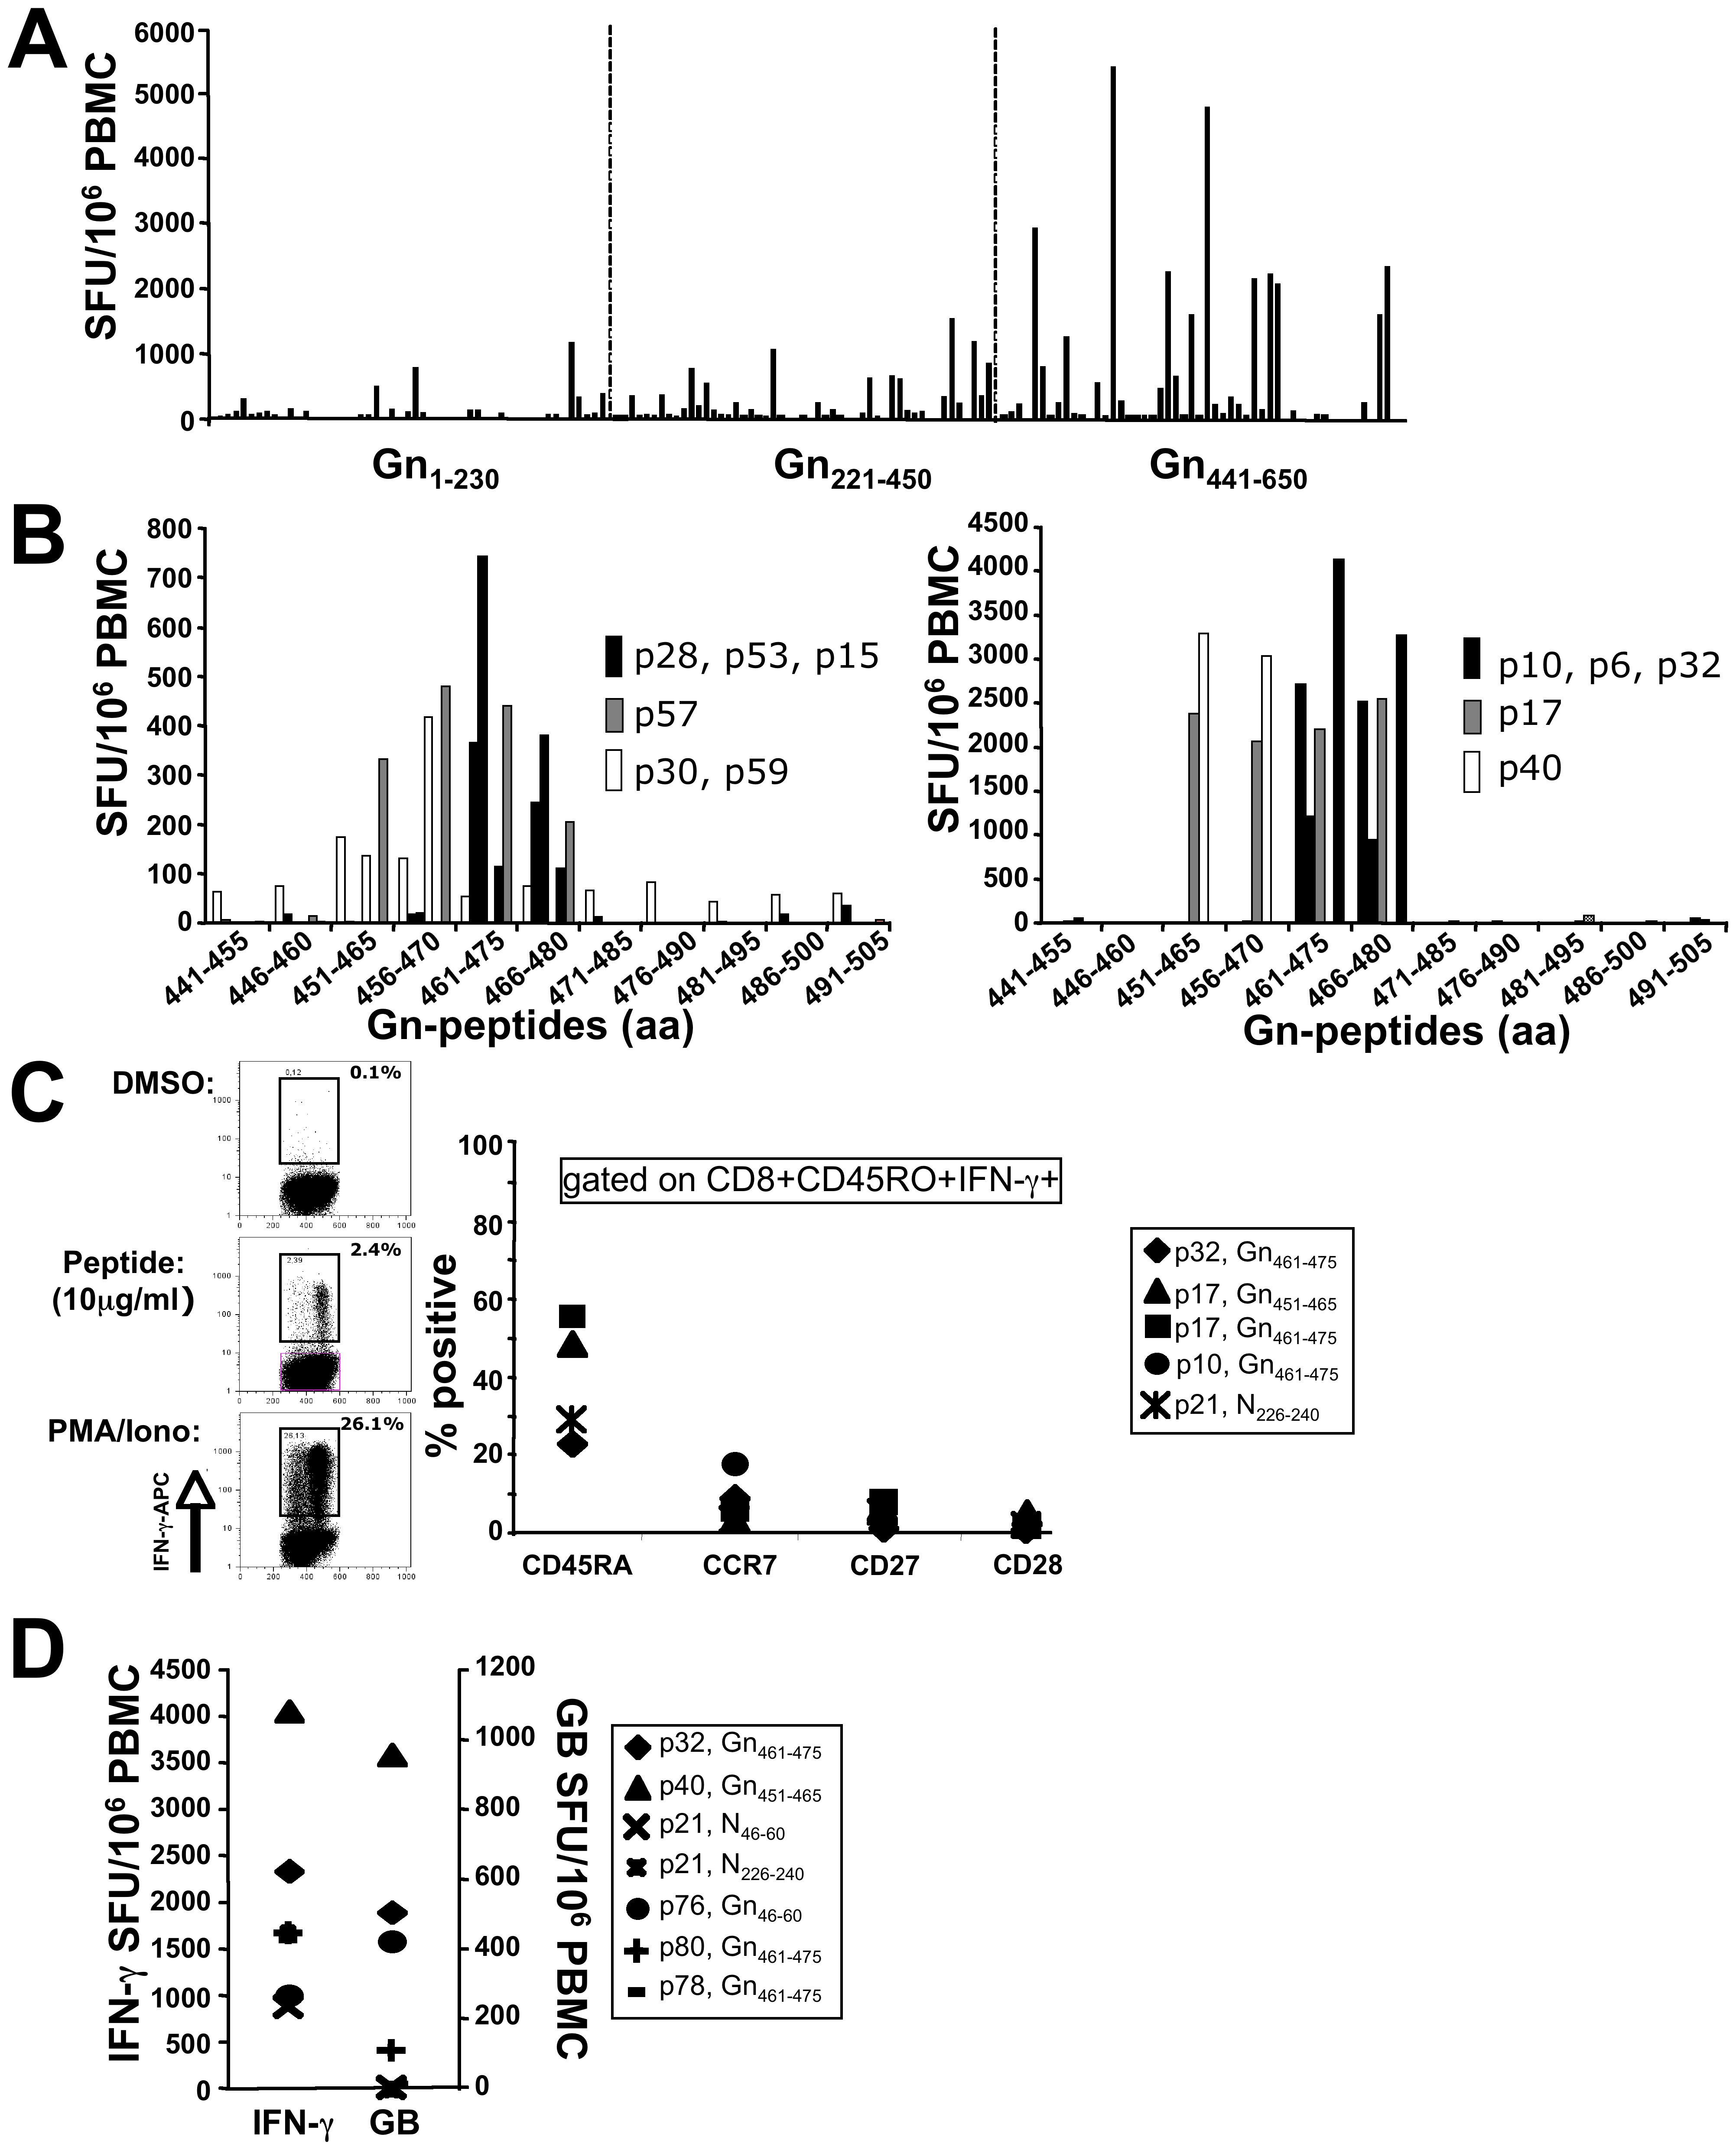 Downmapping of Gn-derived epitopes and characterization of specific T cells.